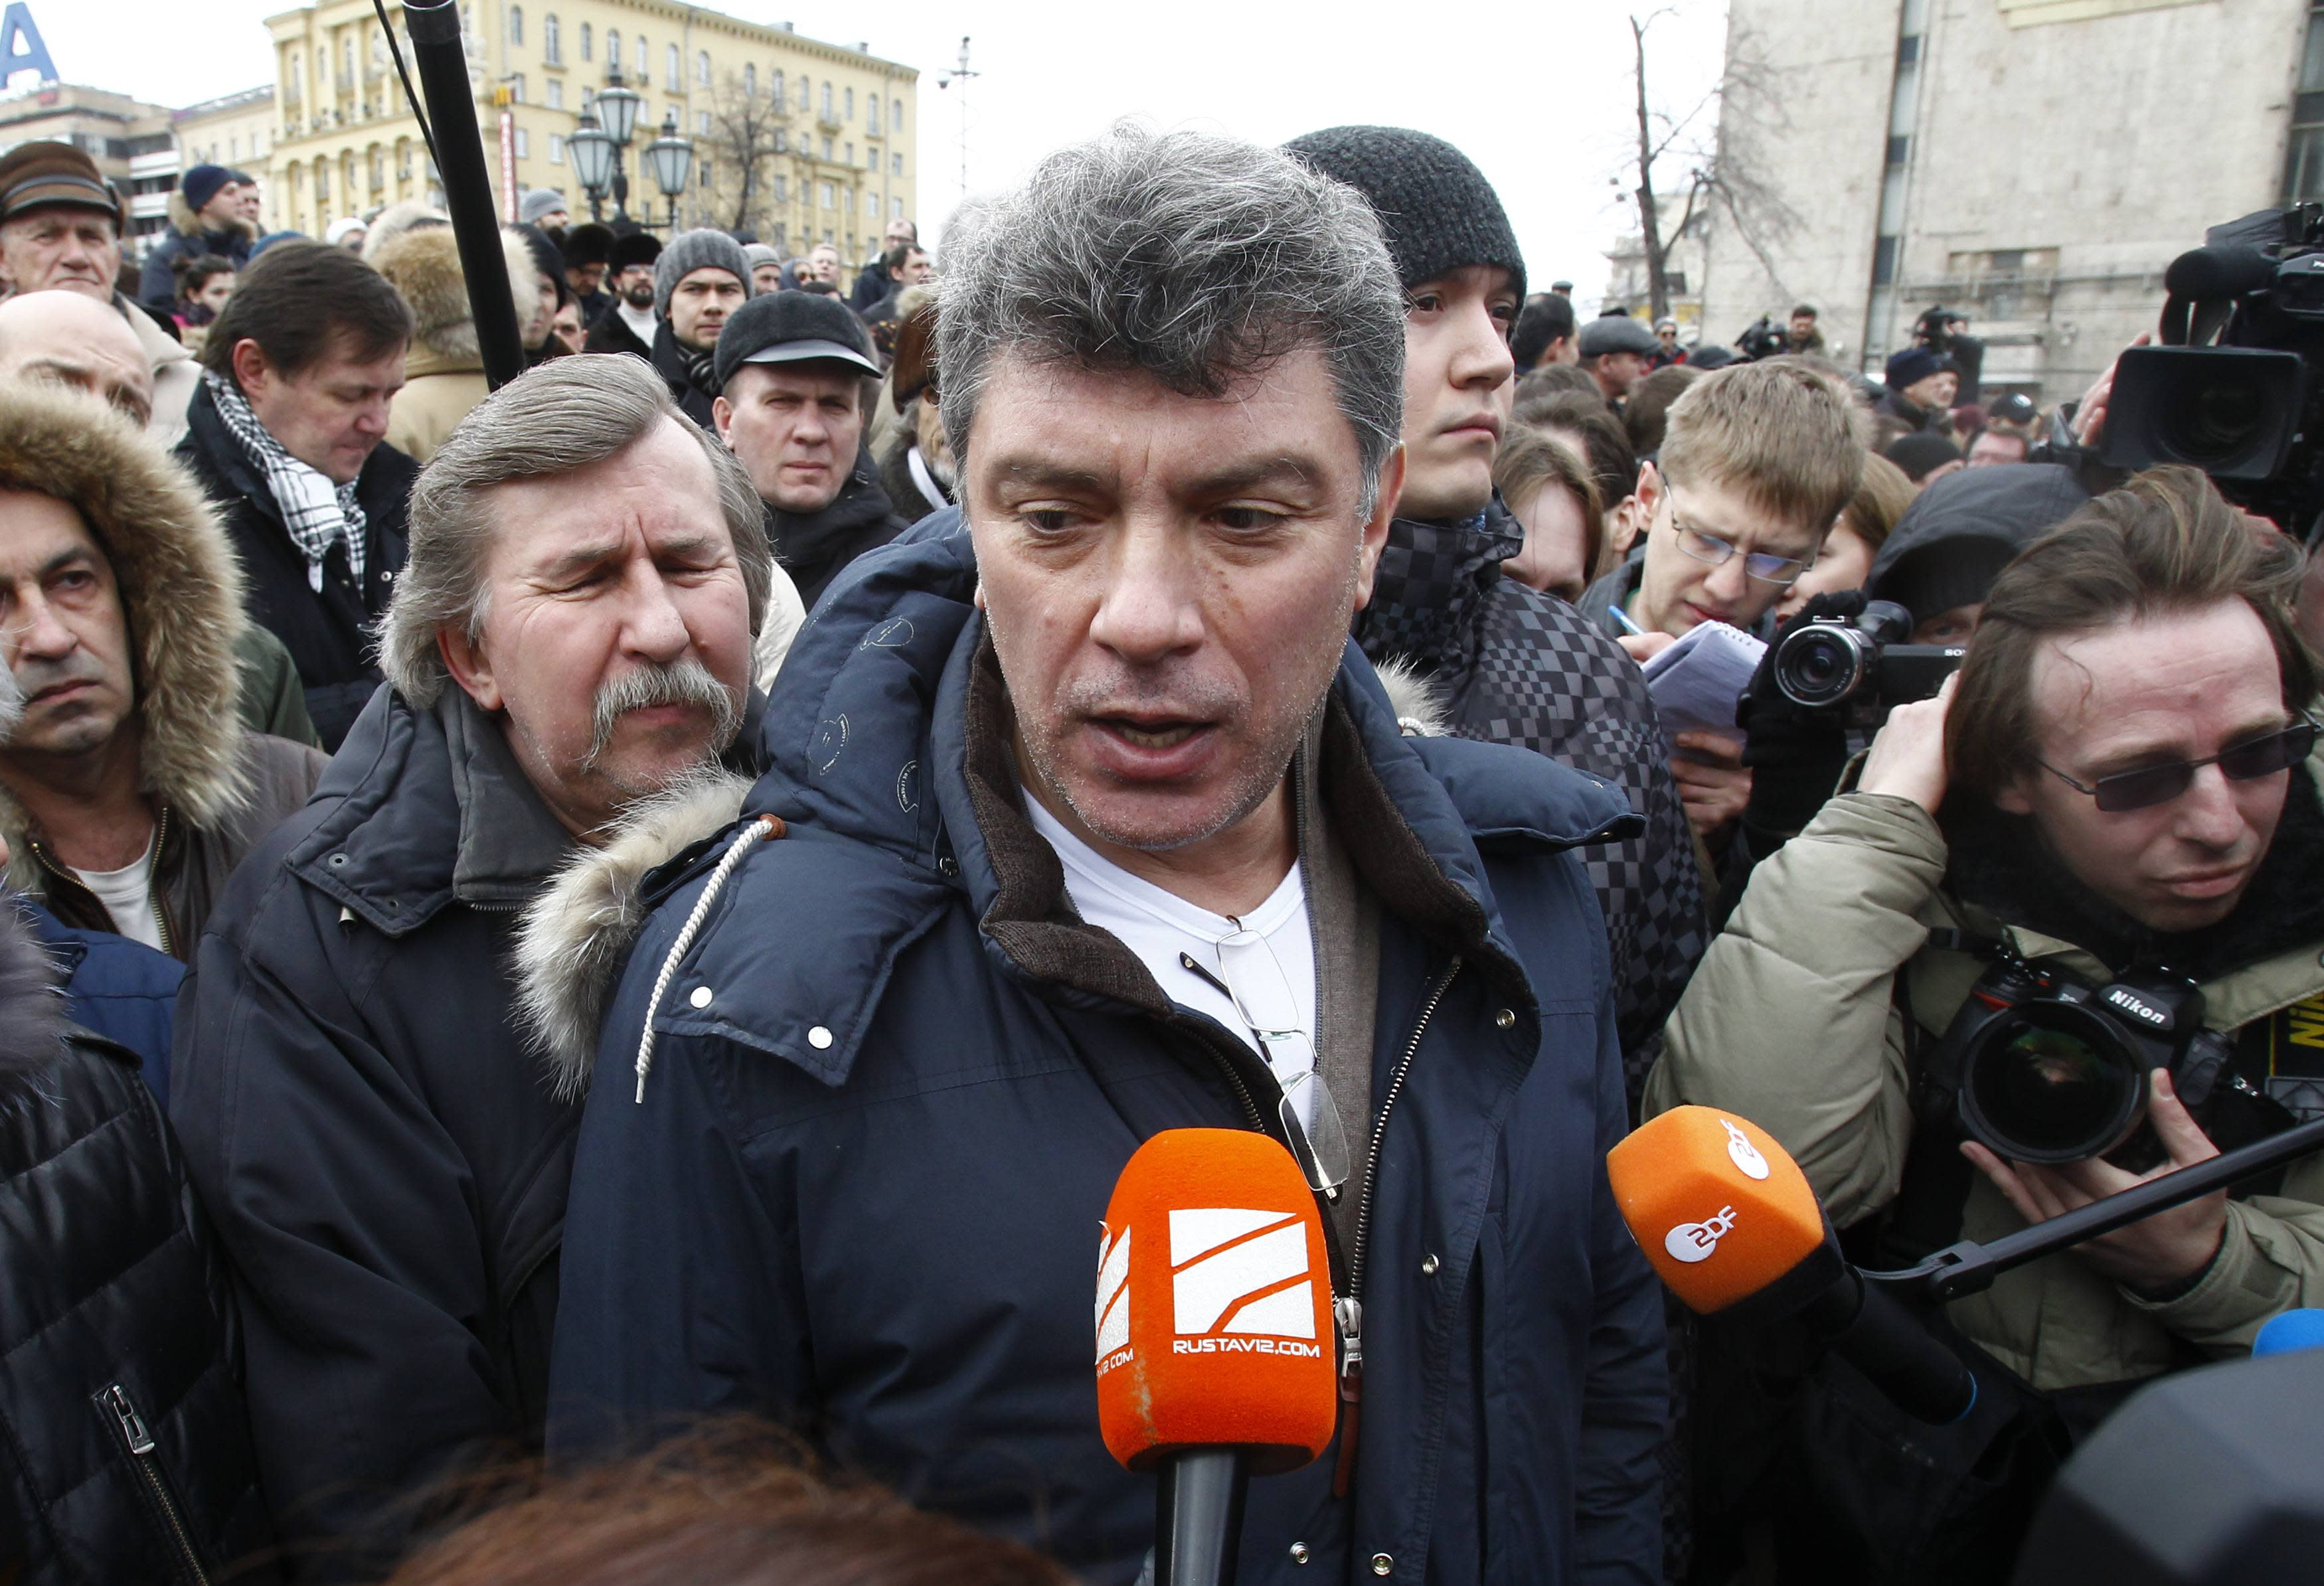 Russian opposition leader Nemtsov shot dead in Moscow